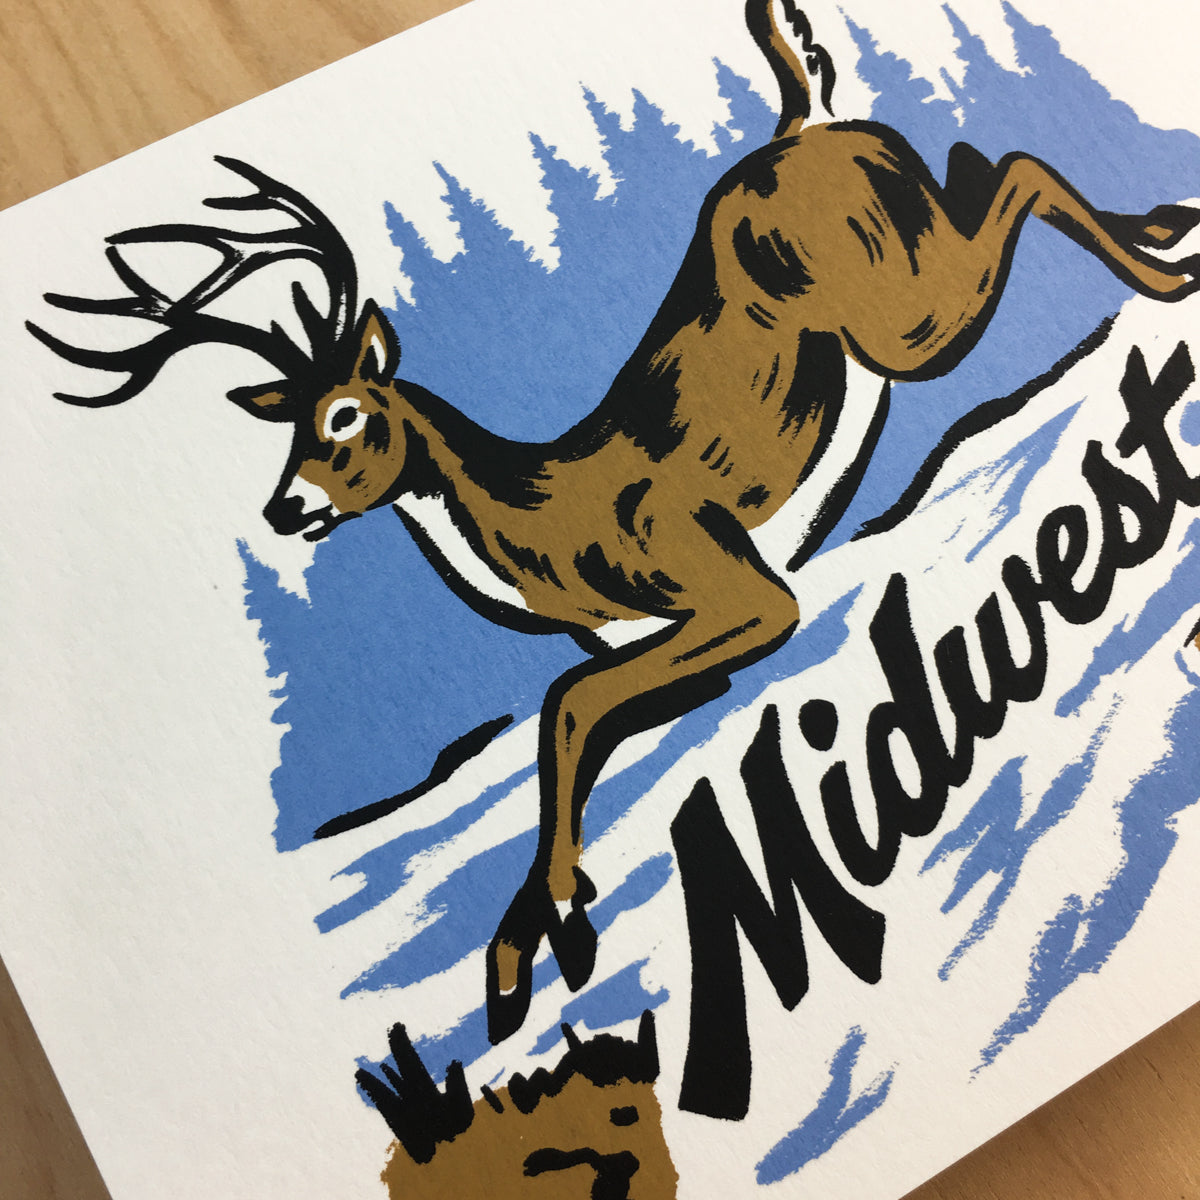 Midwest Whitetail - Signed Print #172